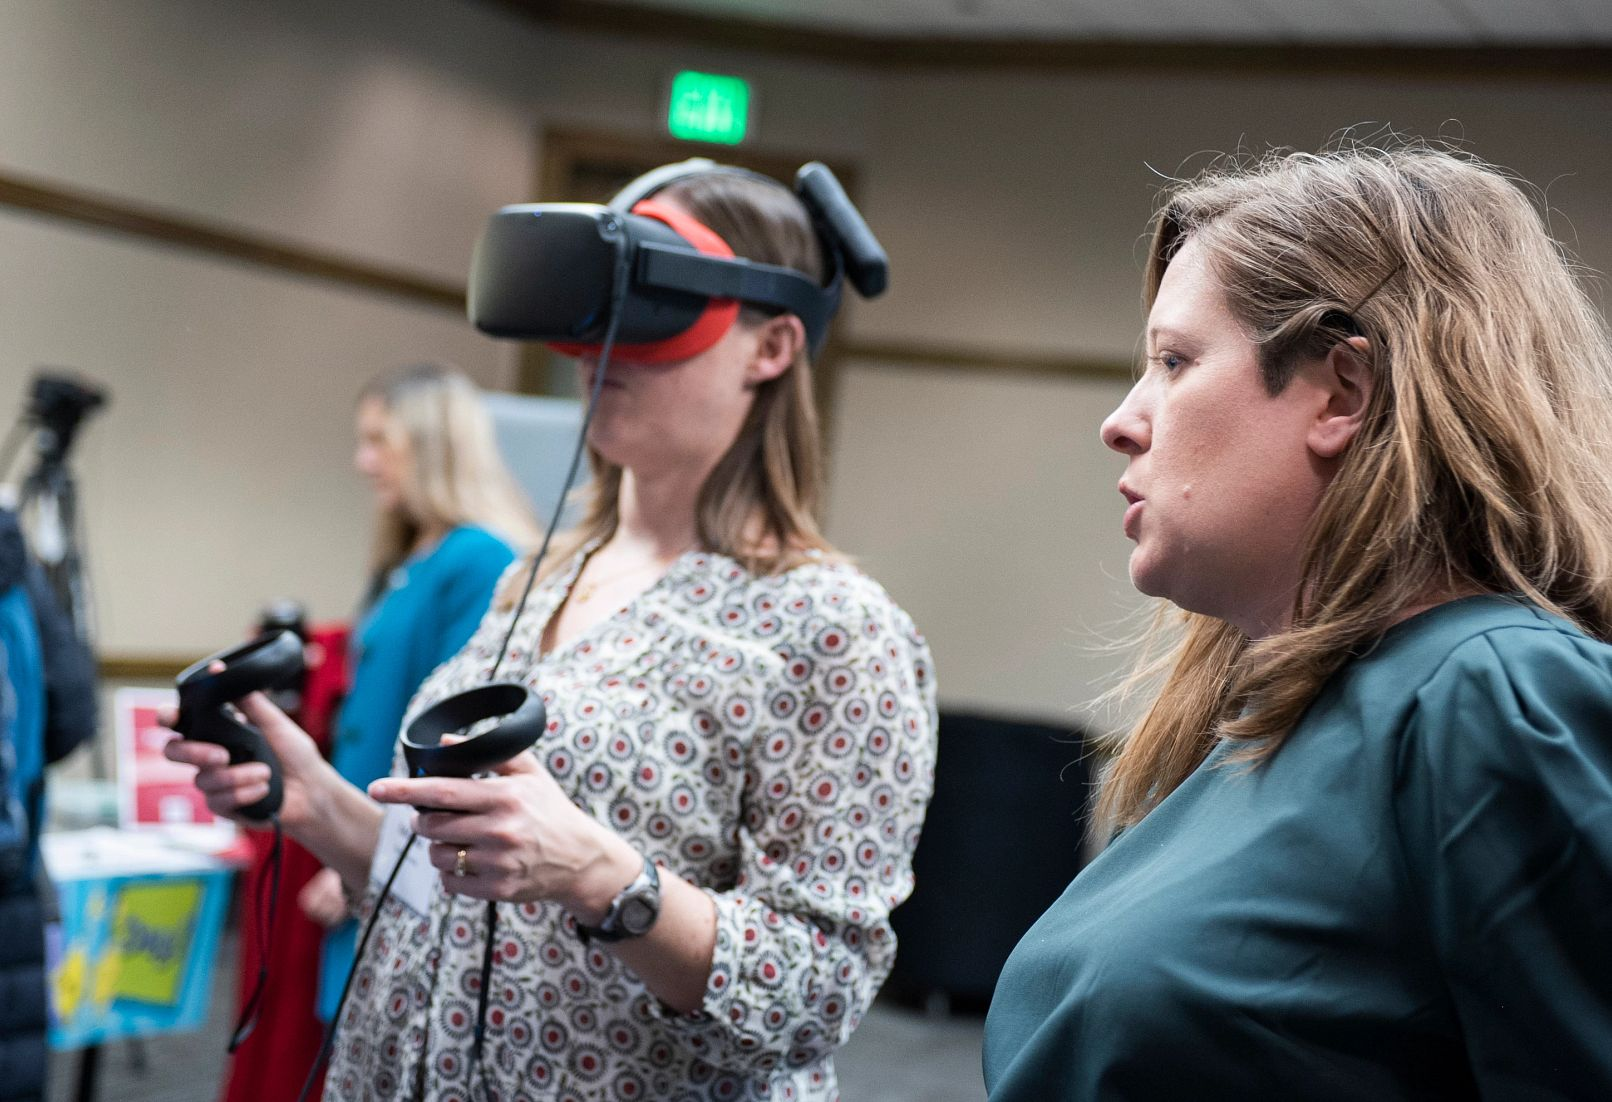 women's summit attendees using a virtual reality